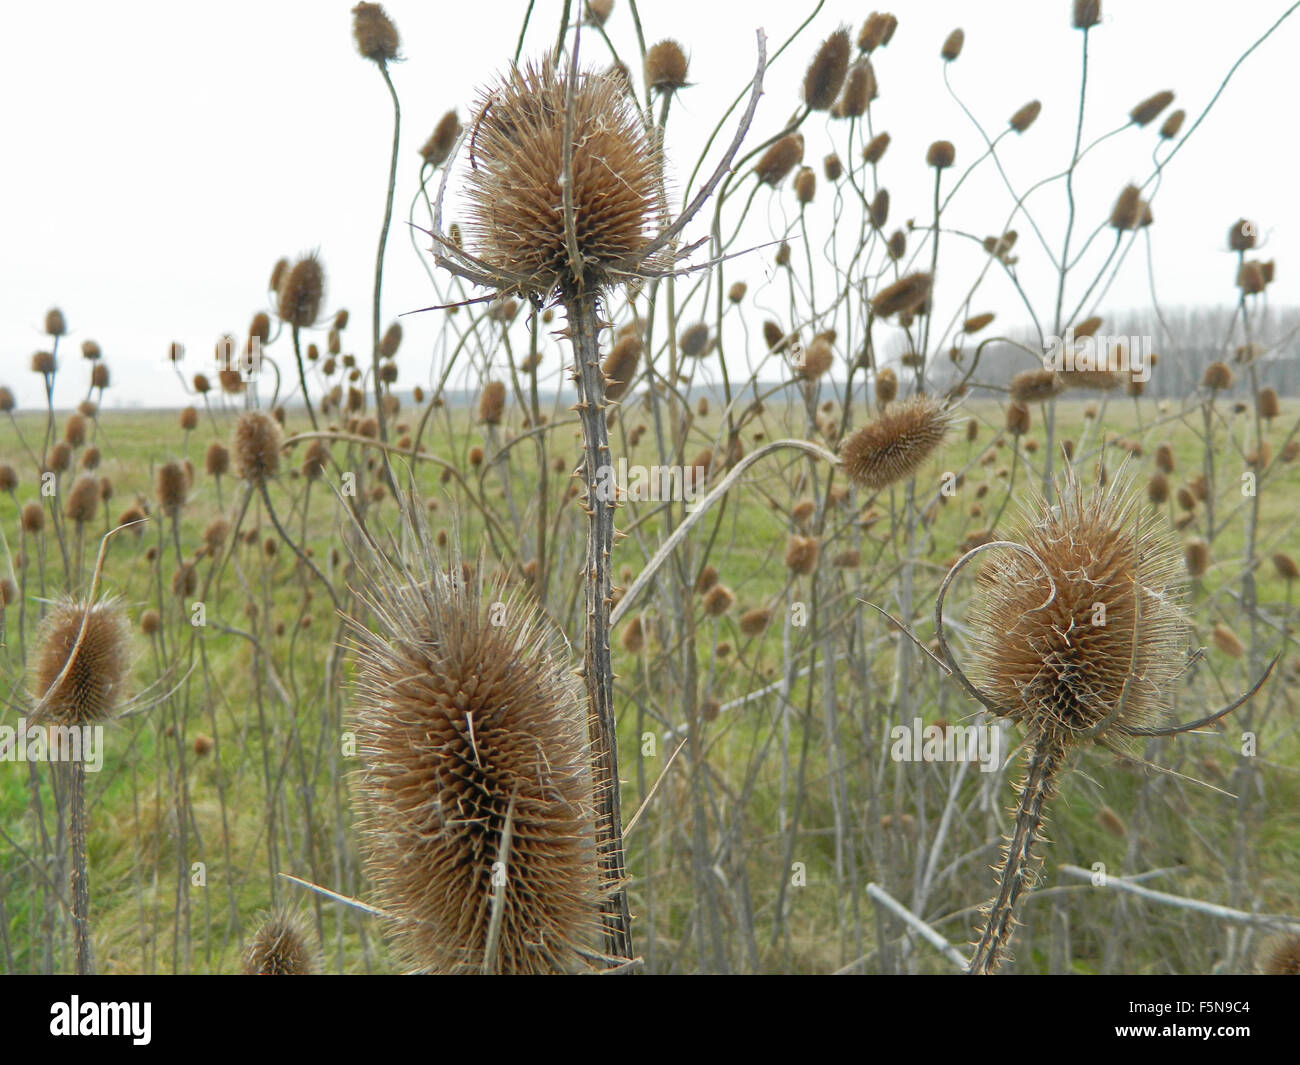 Dry thistle in the field defies the autumn and the coming winter. - Stock Image